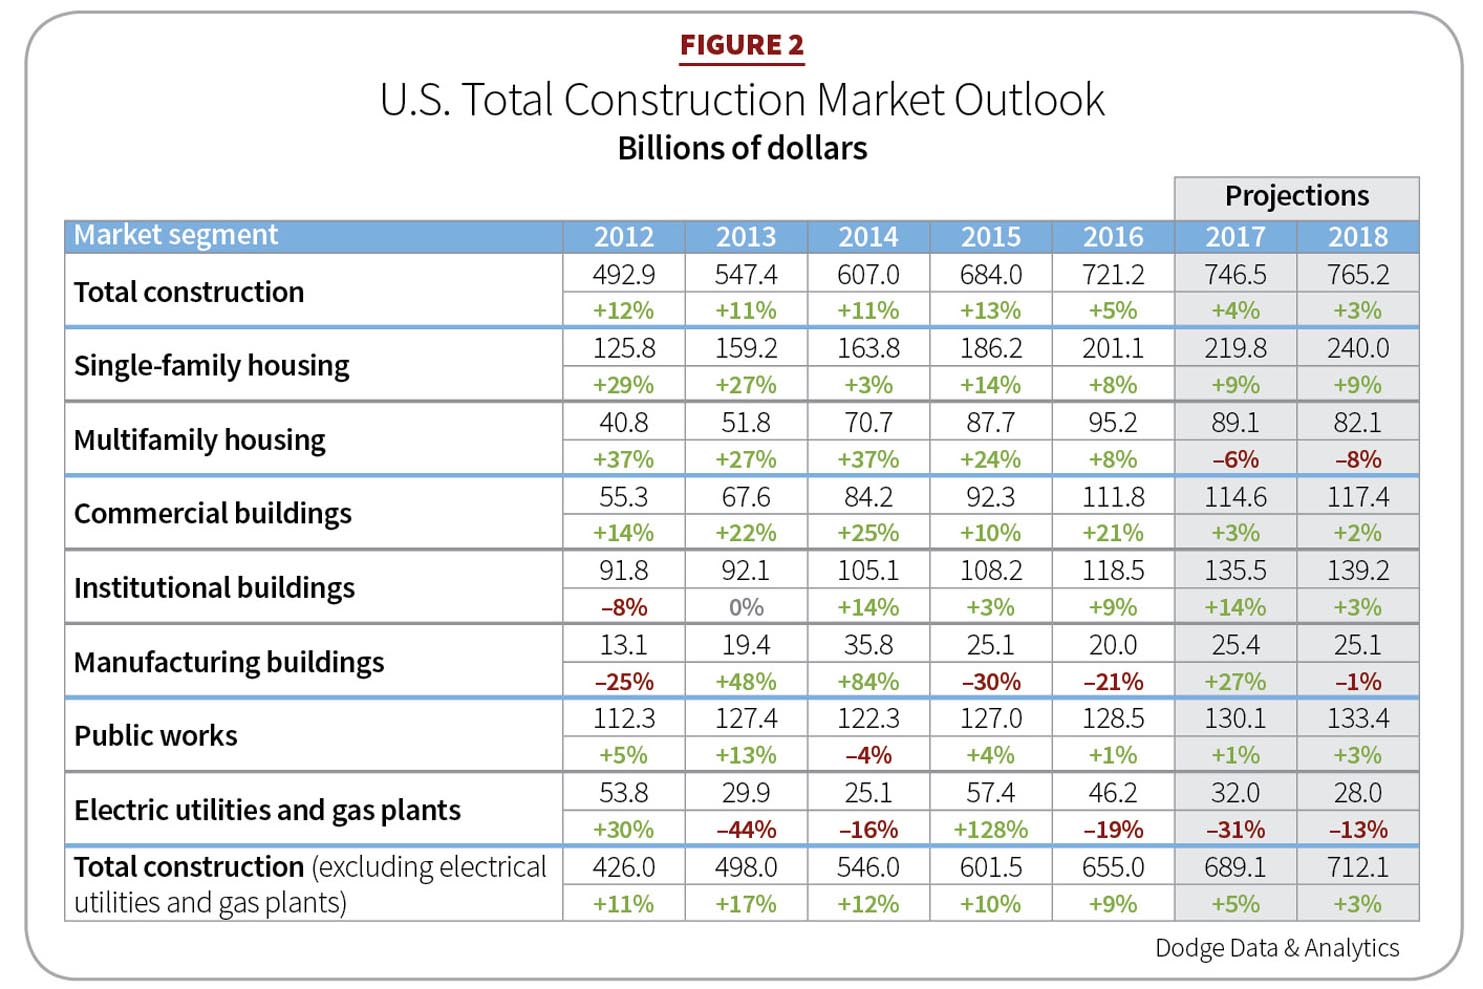 Figure 2: U.S. Total Construction Market Outlook